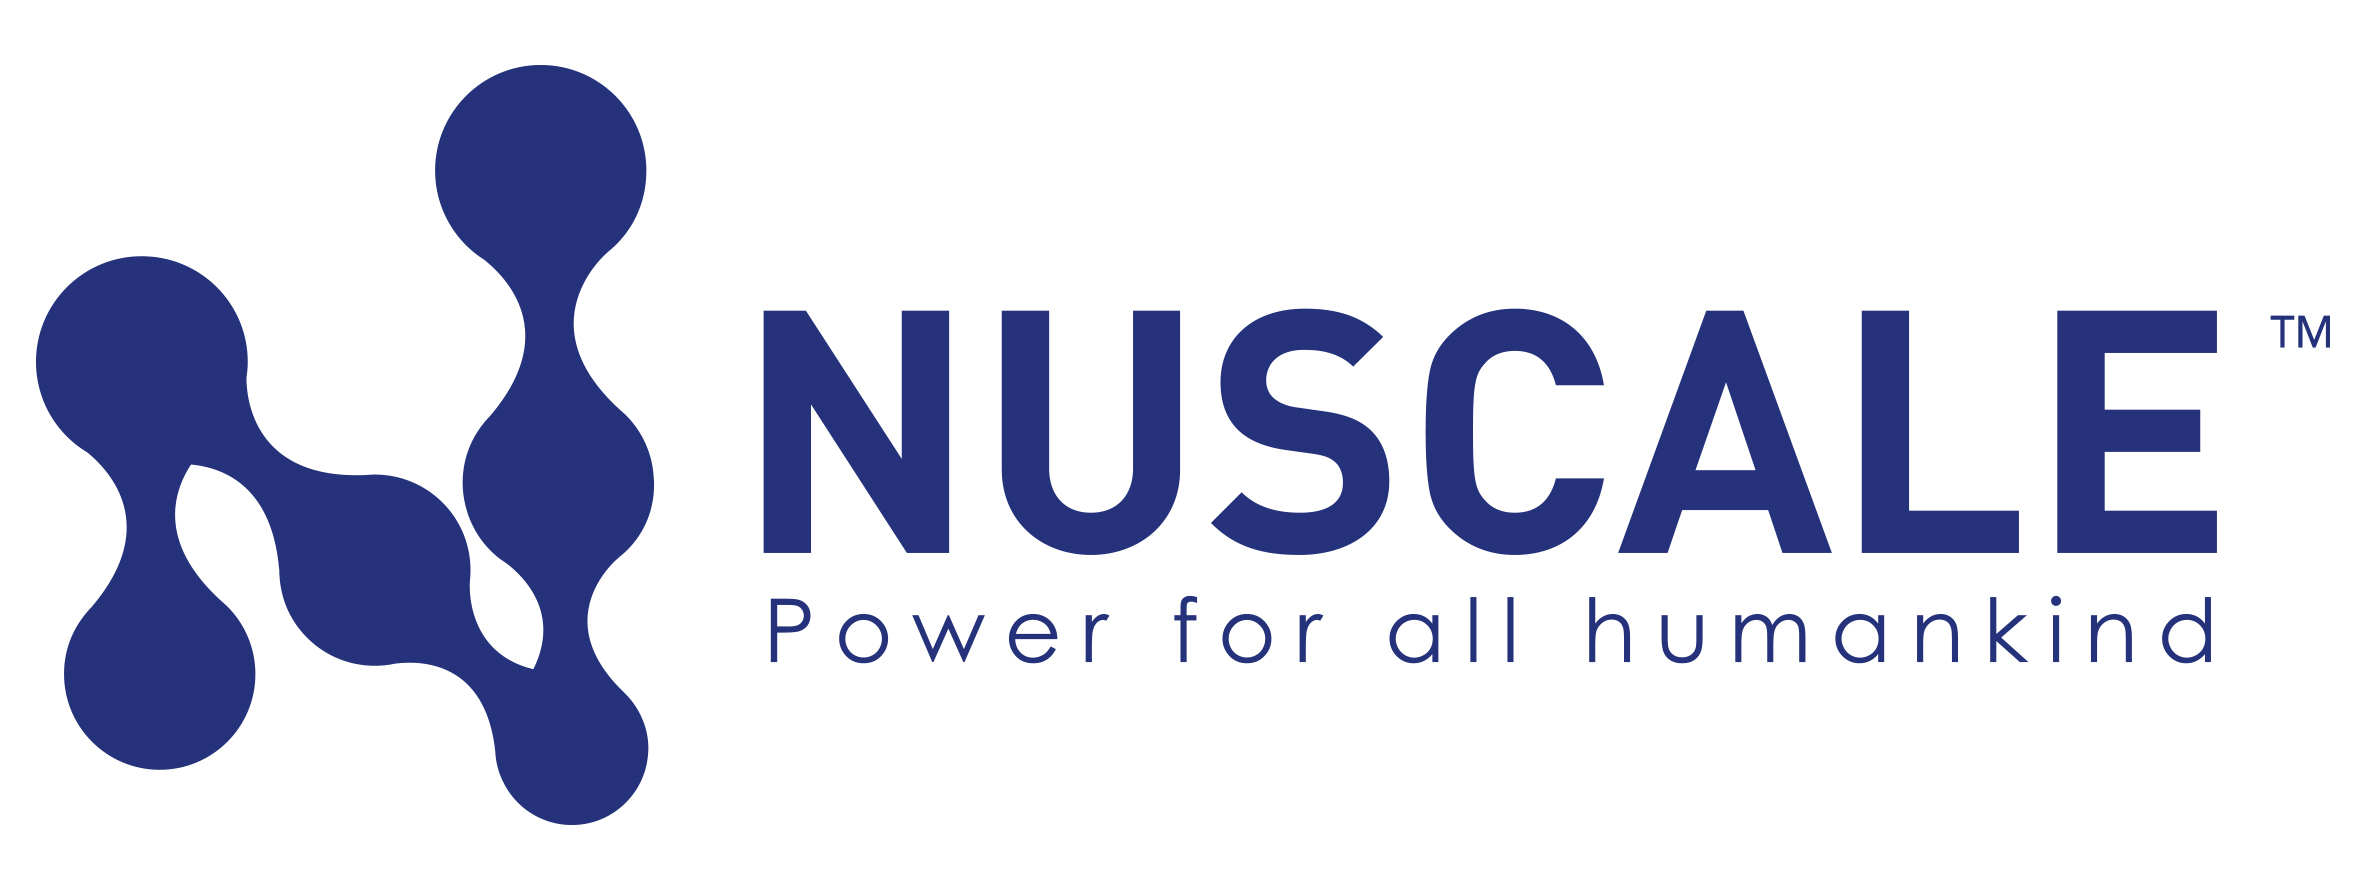 Nuscale Power for all humankind